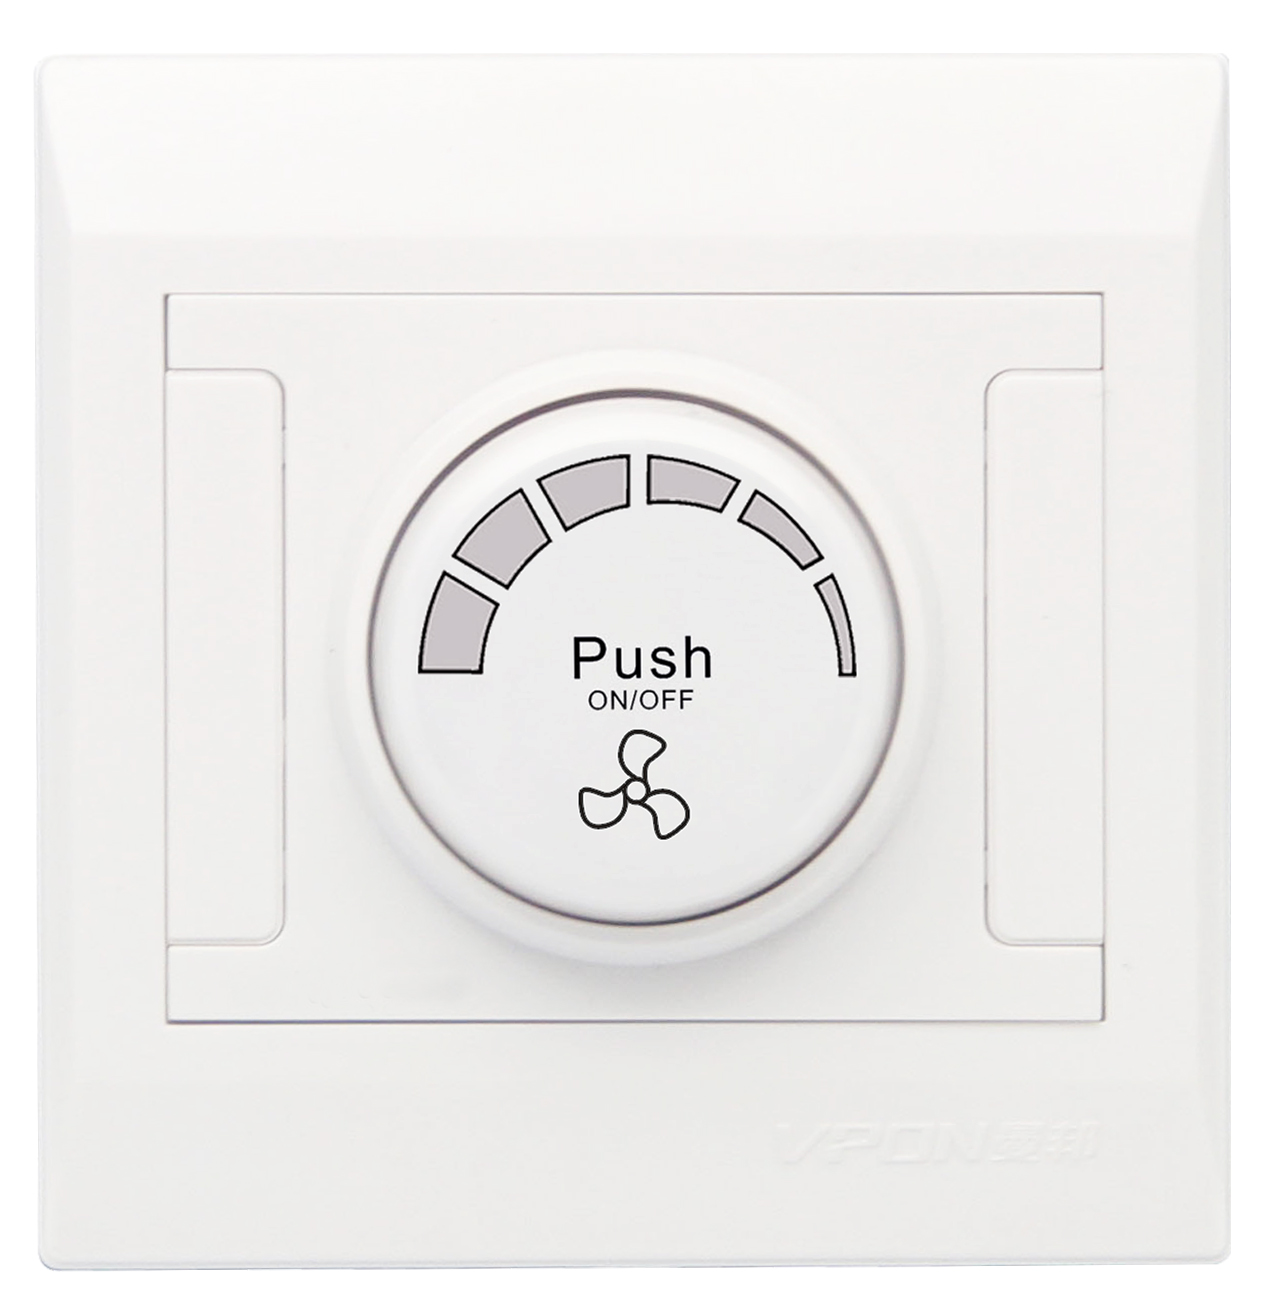 Fan Dimmer (Push on/off)